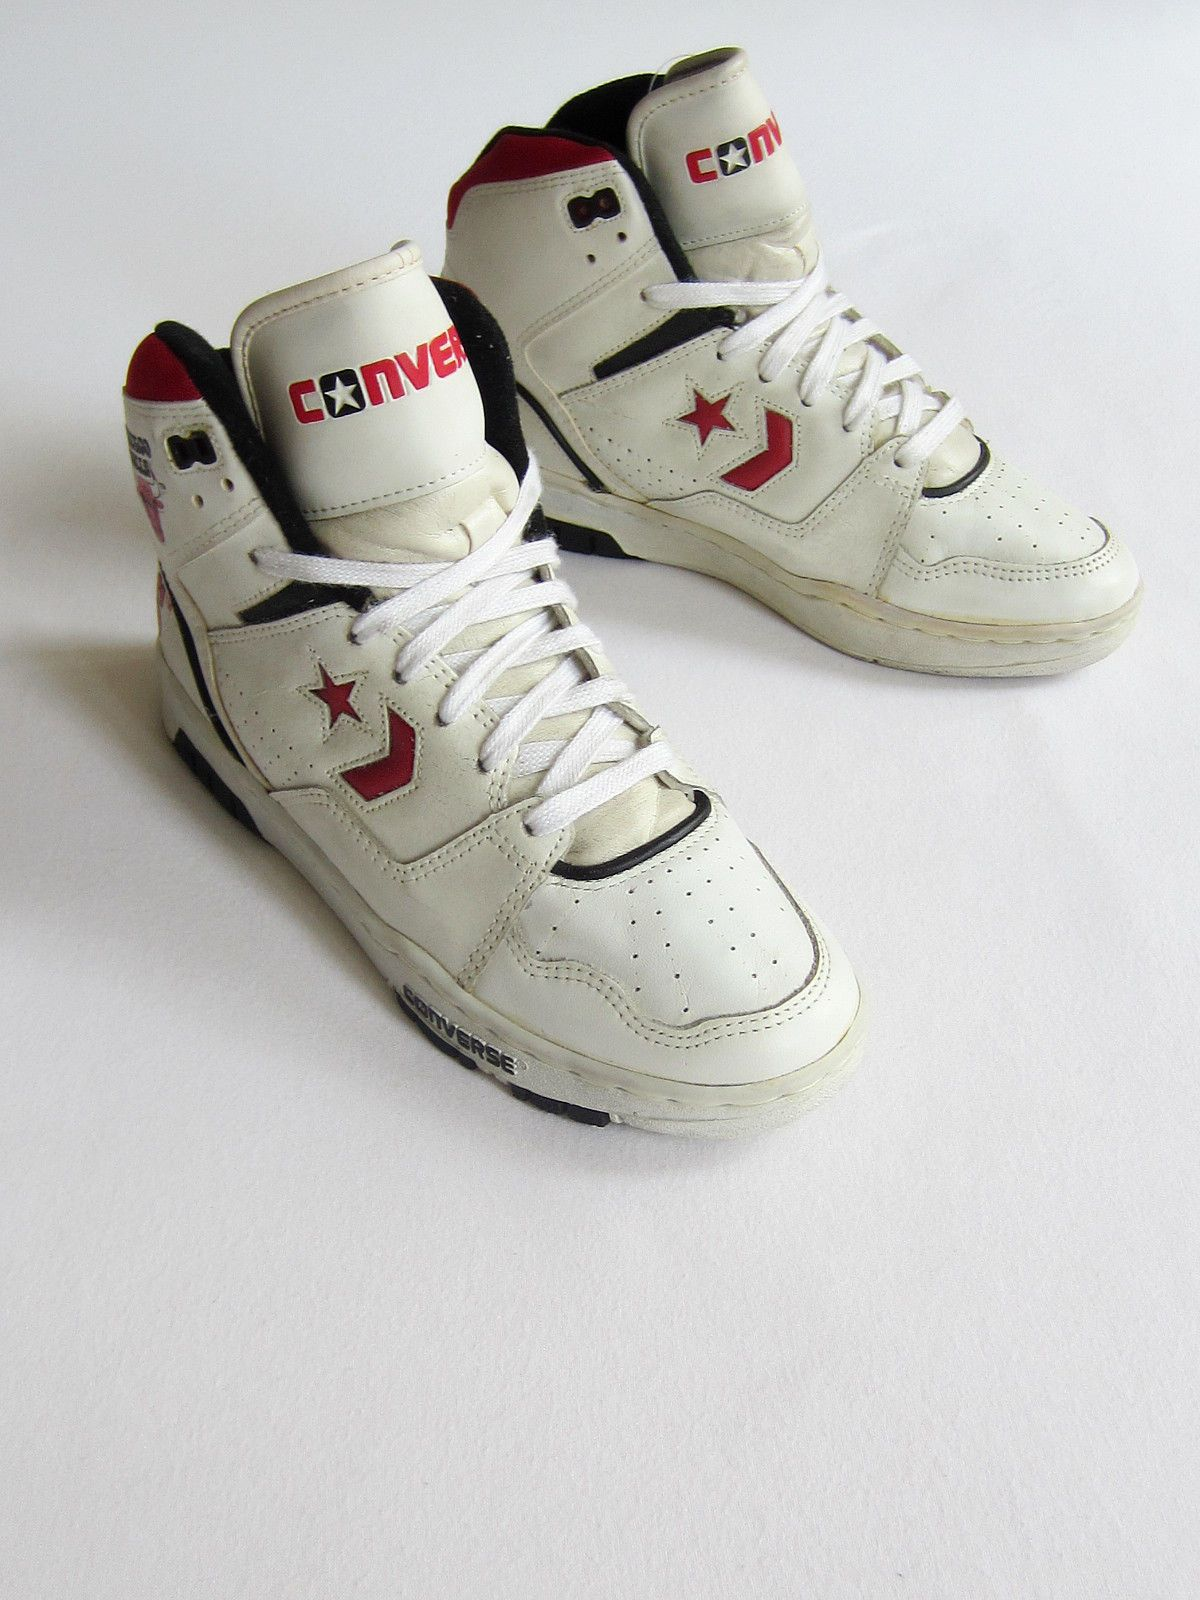 huge discount 58b7f 65a01 Converse Chicago Bulls Hi 1990 NBA New Tag Box OG Vintage Deadstock Cons  Jordan  eBay